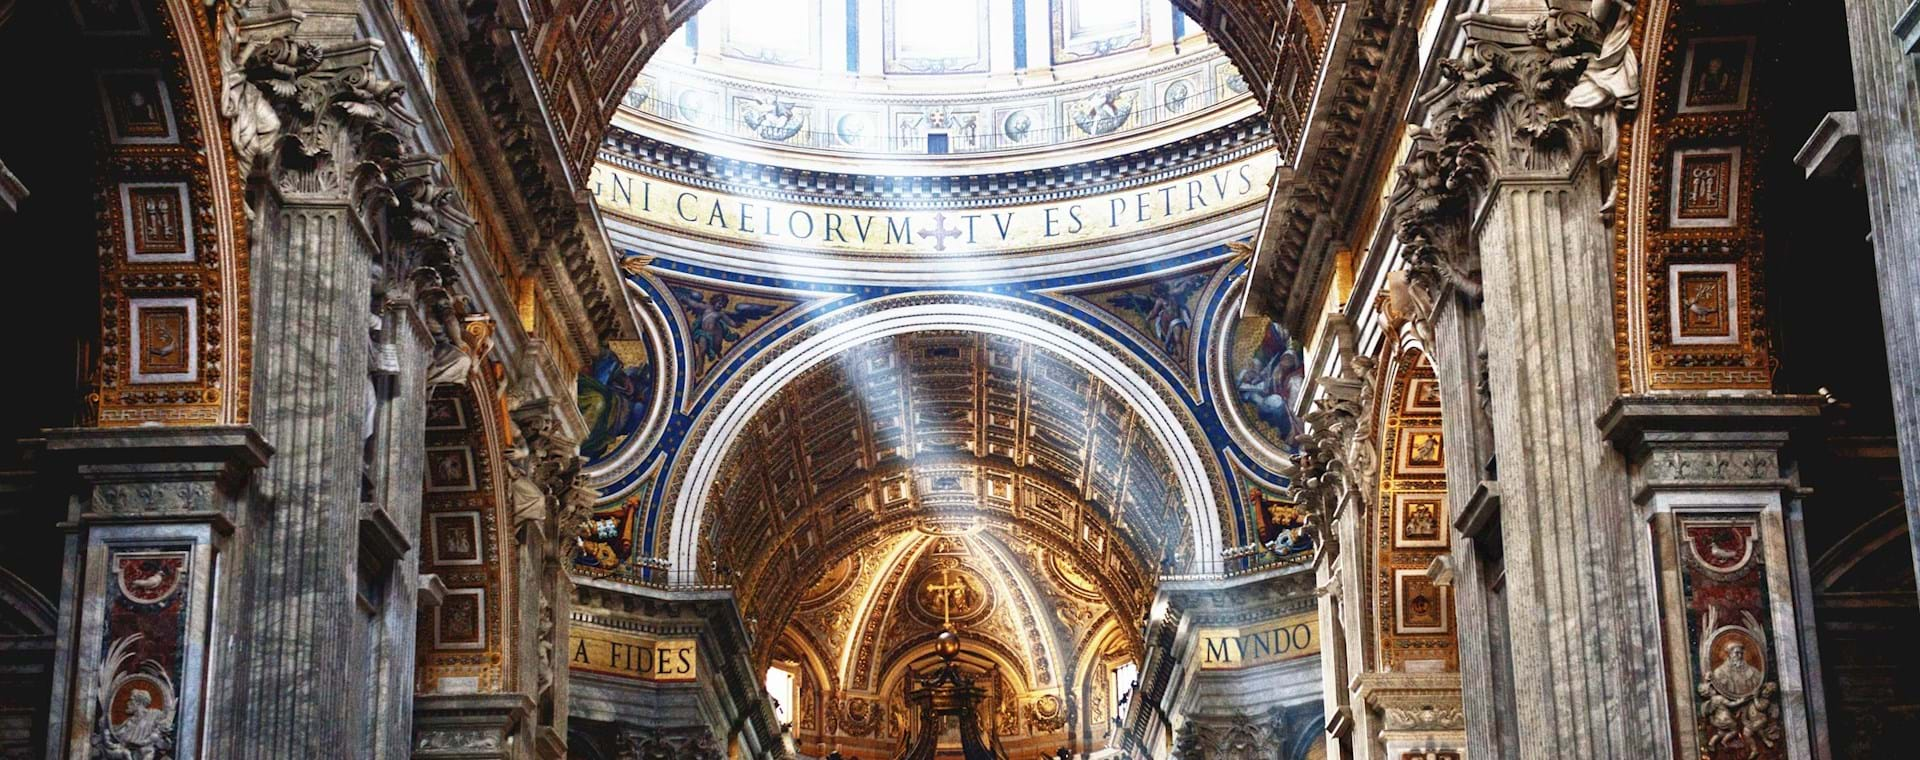 under dome St Peter's Basilica